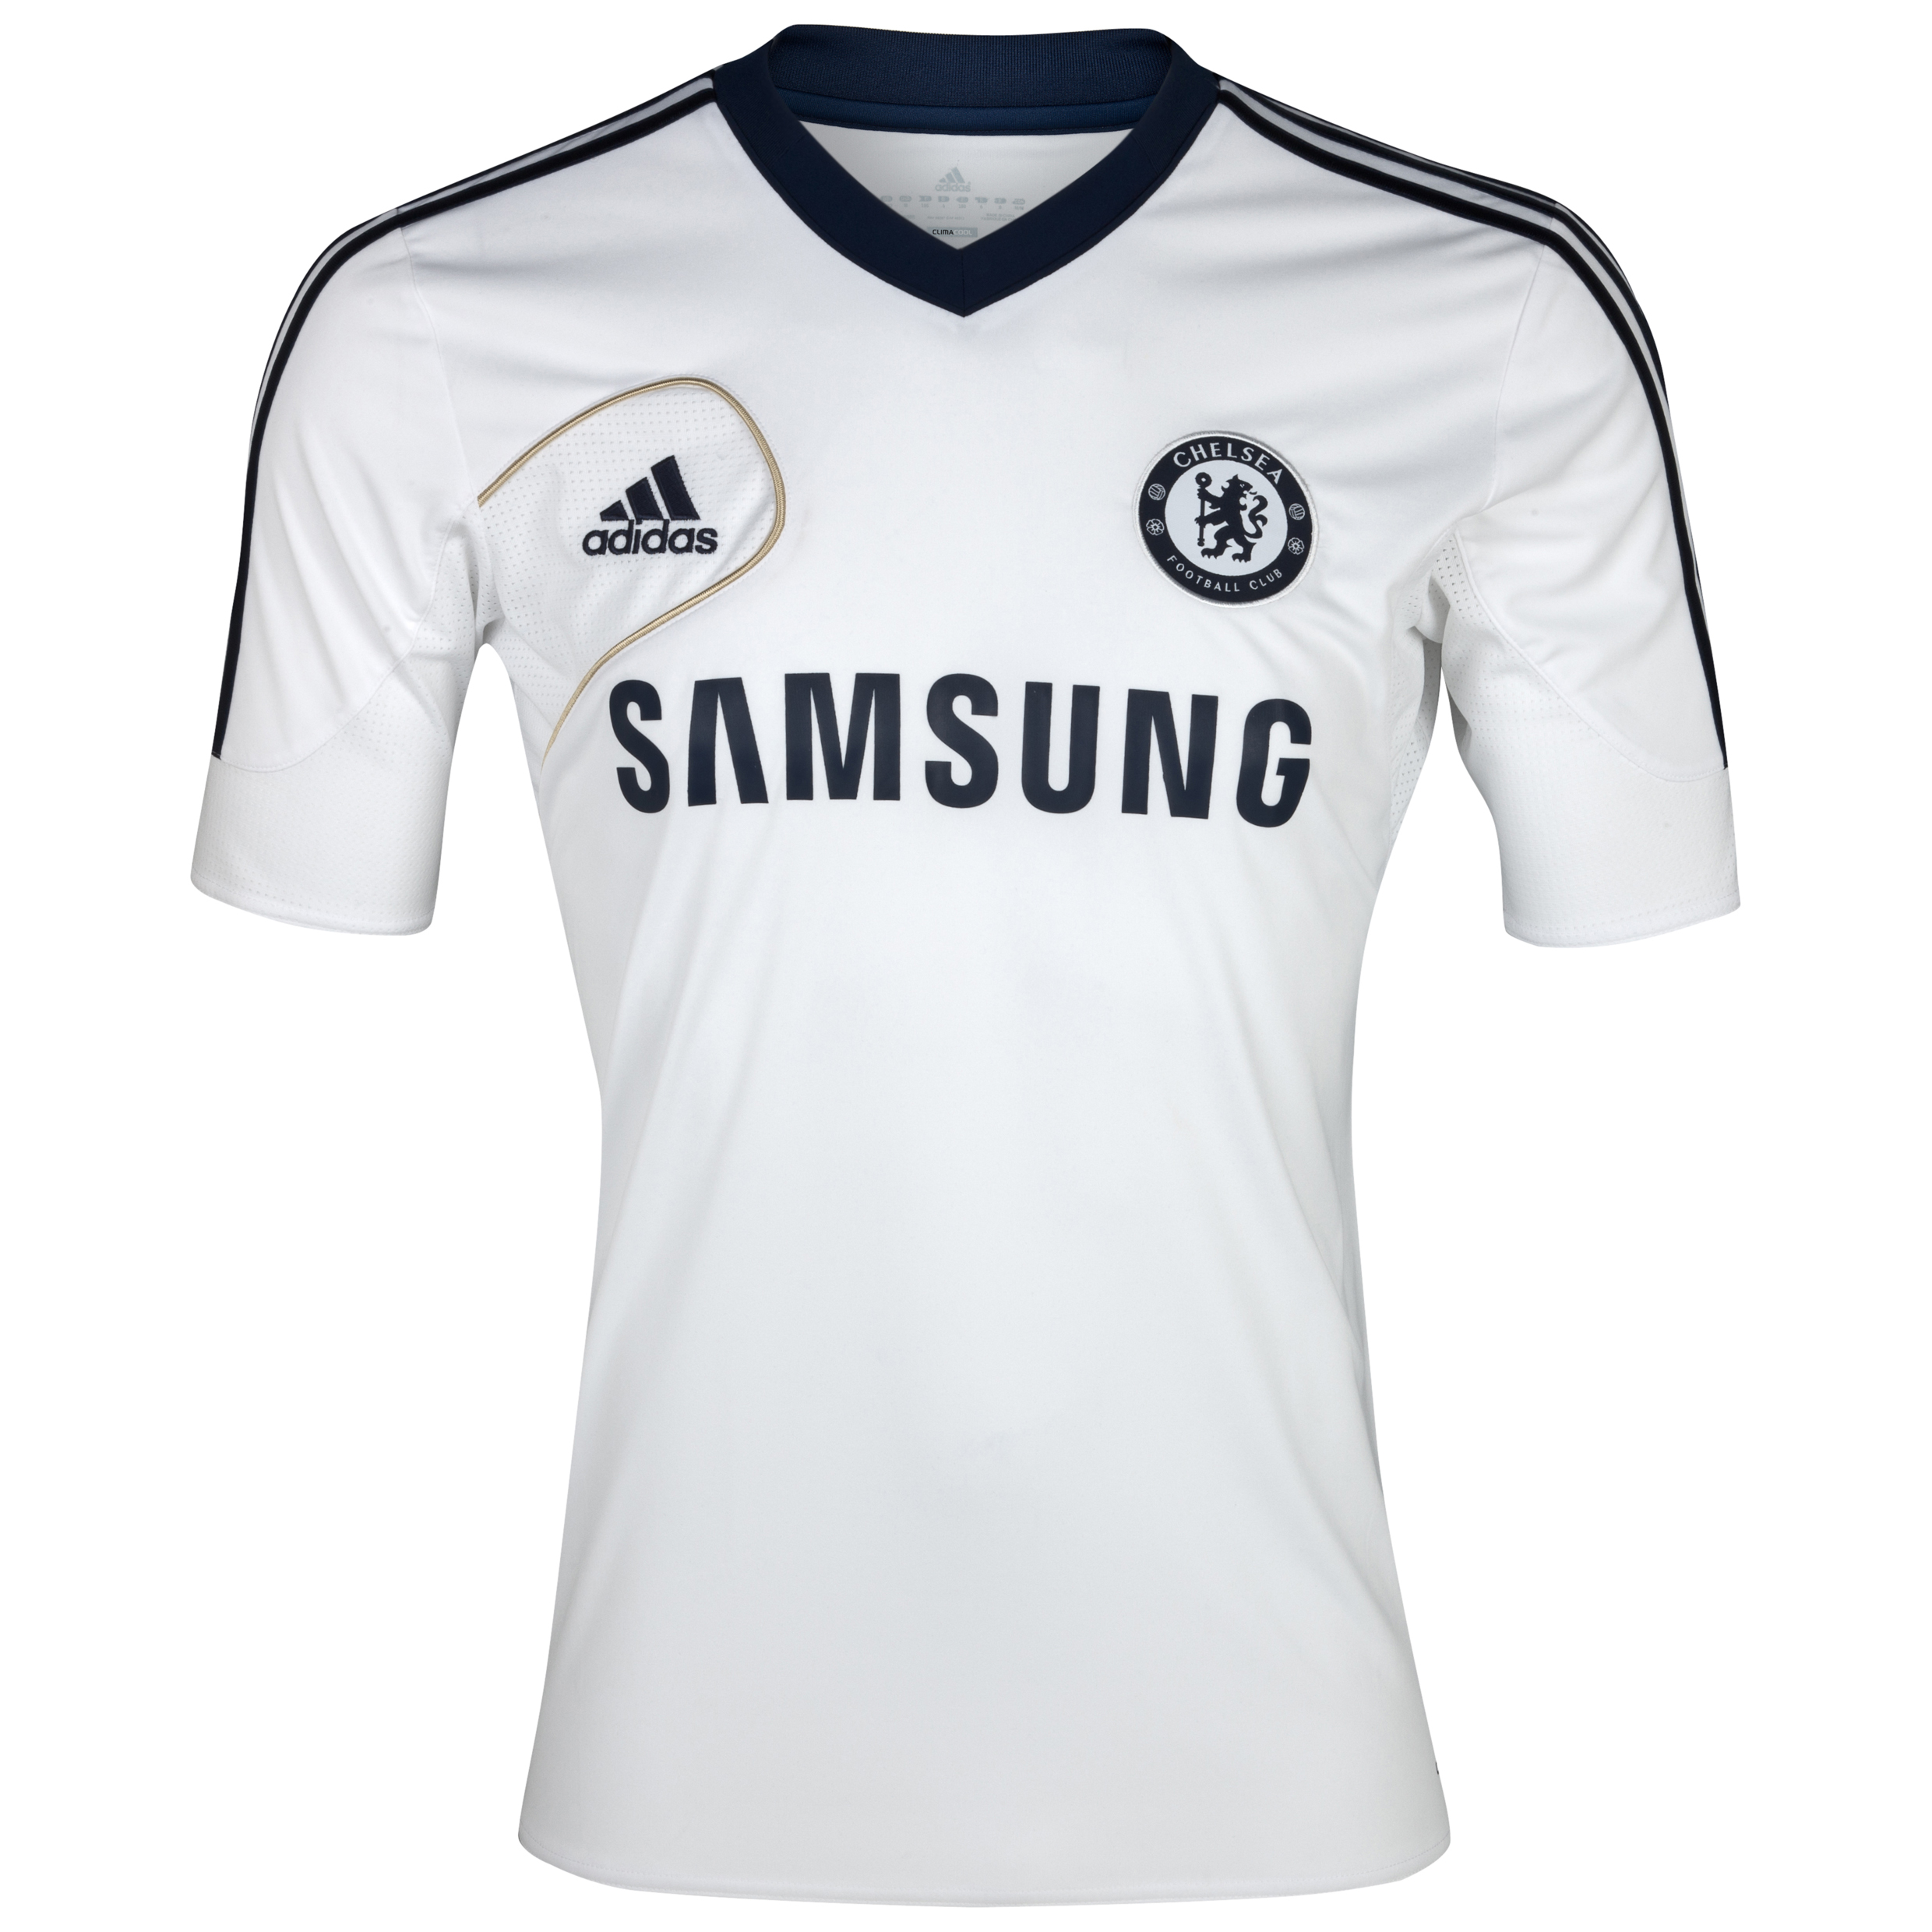 adidas Chelsea Training Jersey - White/Collegiate Navy/Light Football Gold - Youths